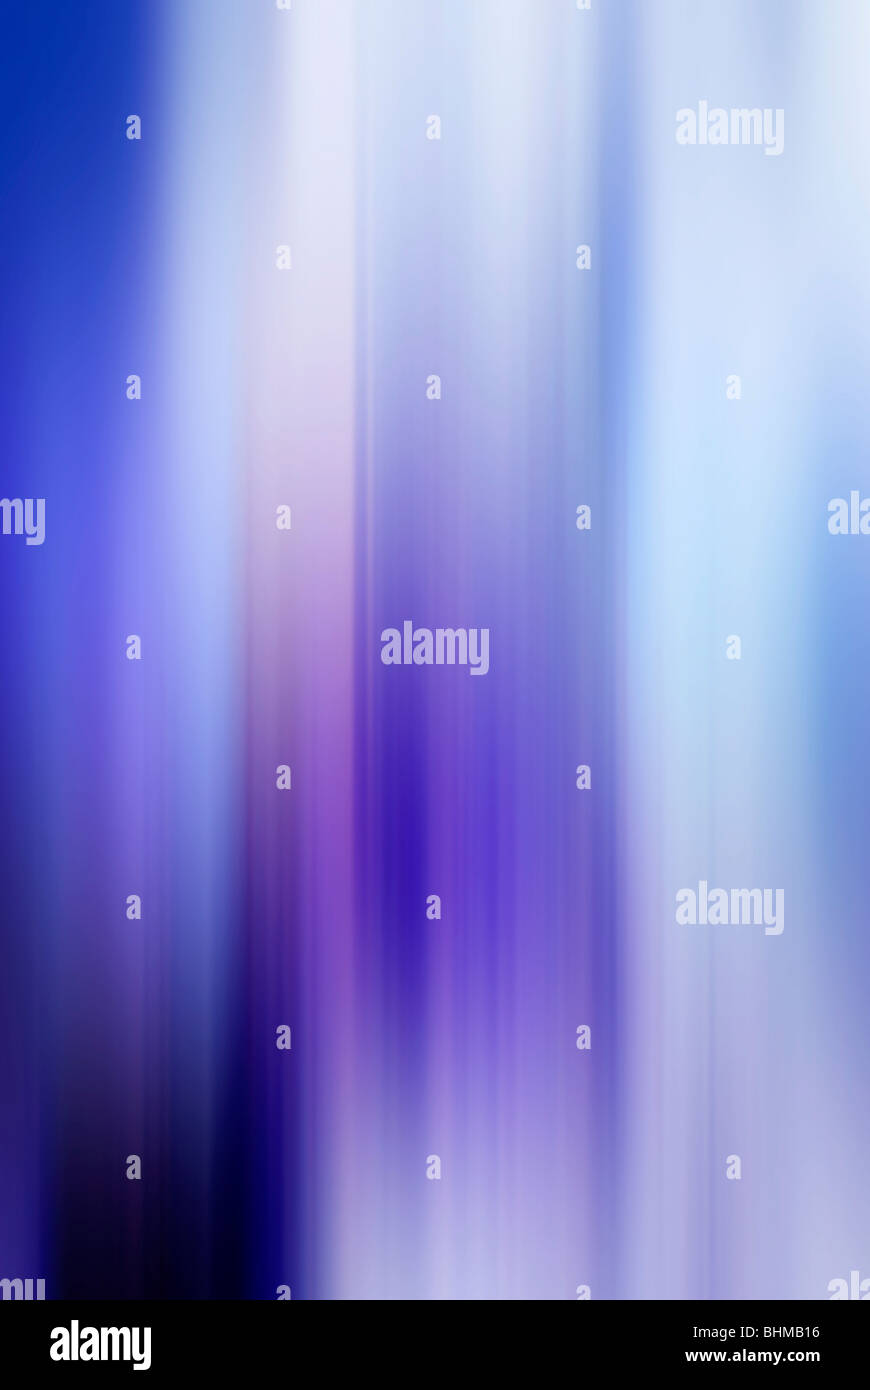 abstract background with blue violet and white lines in vertical motion blur - Stock Image